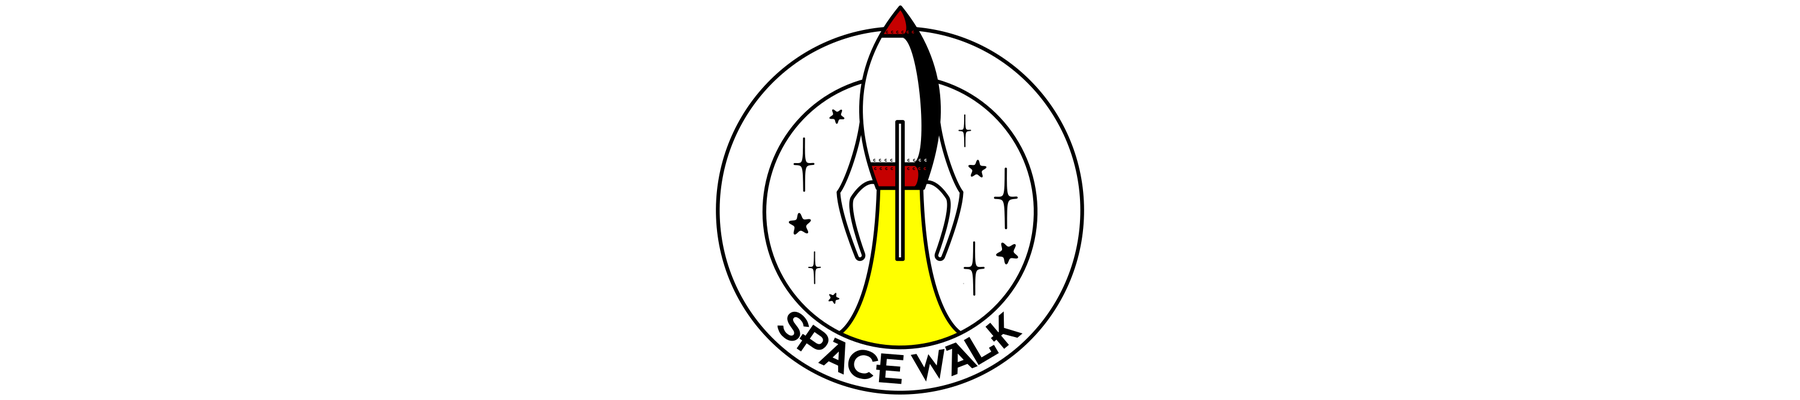 Spacewalkpins